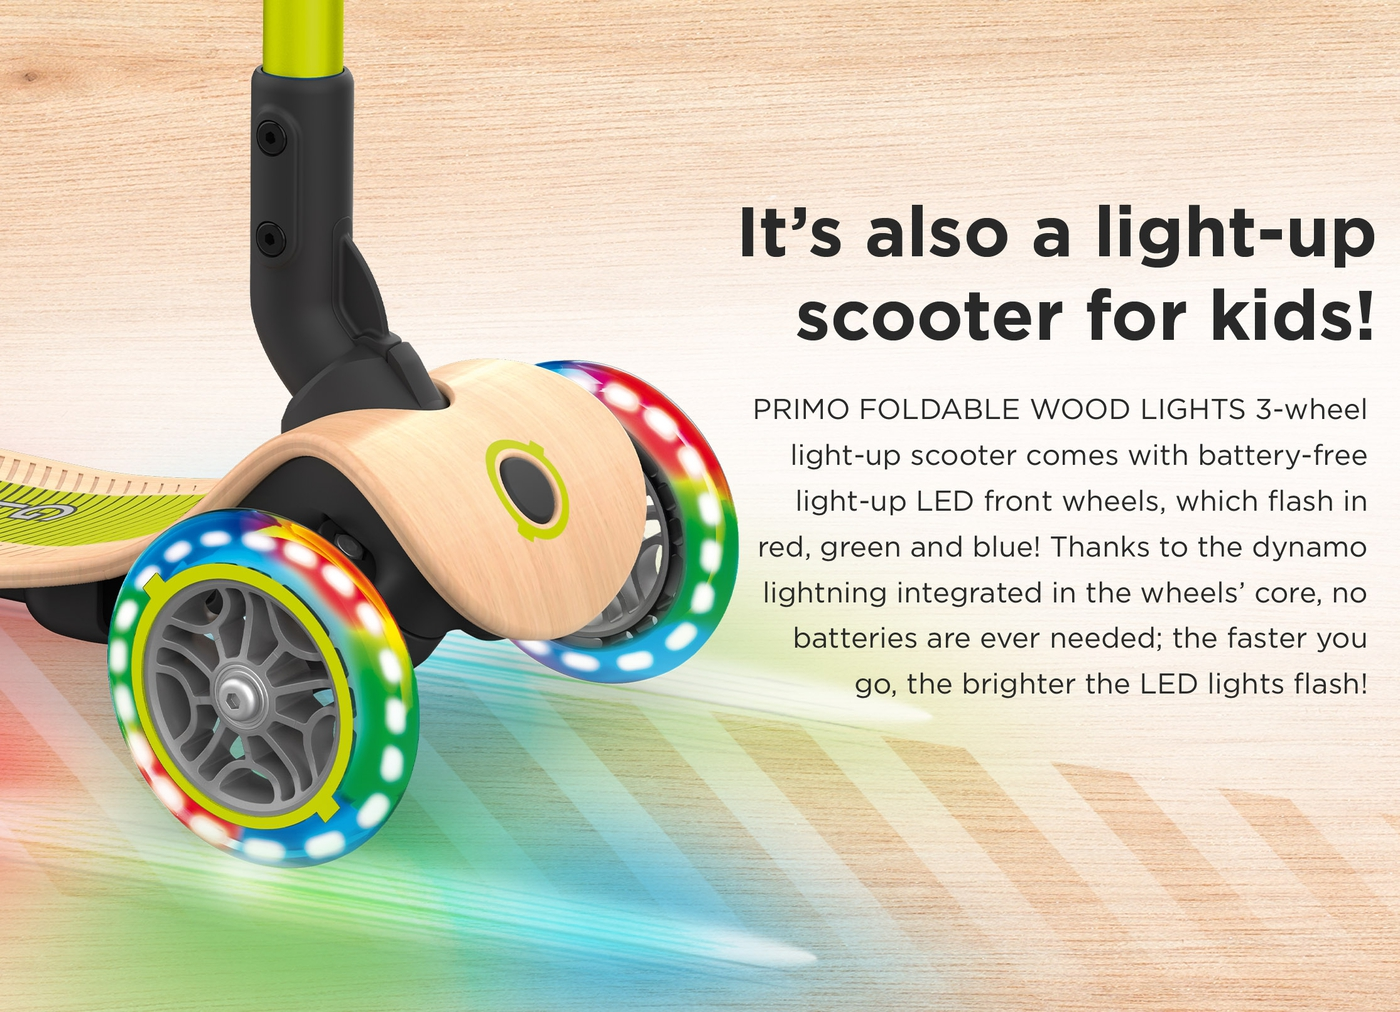 It's also a light-up scooter for kids!